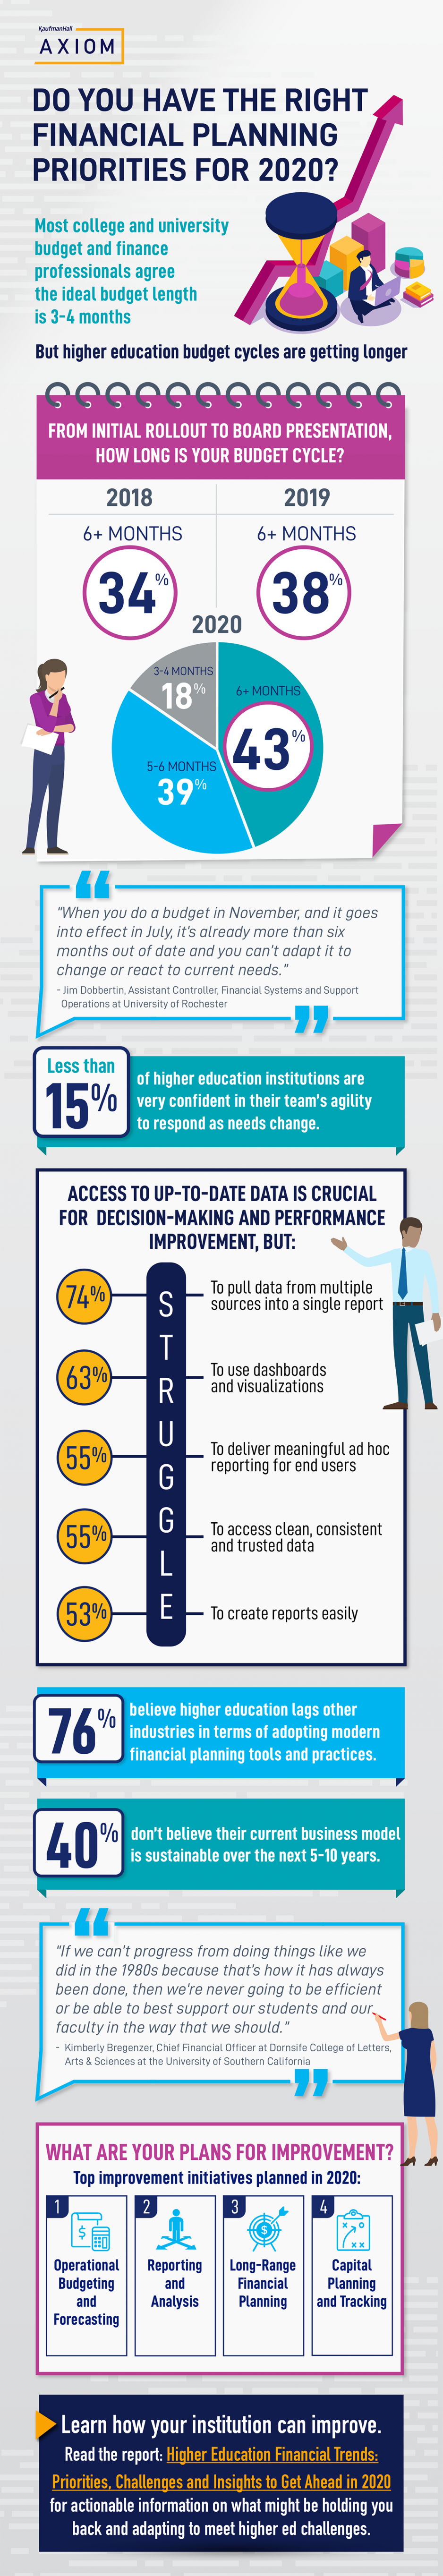 Higher Education Priorities for 2020 - Infographic